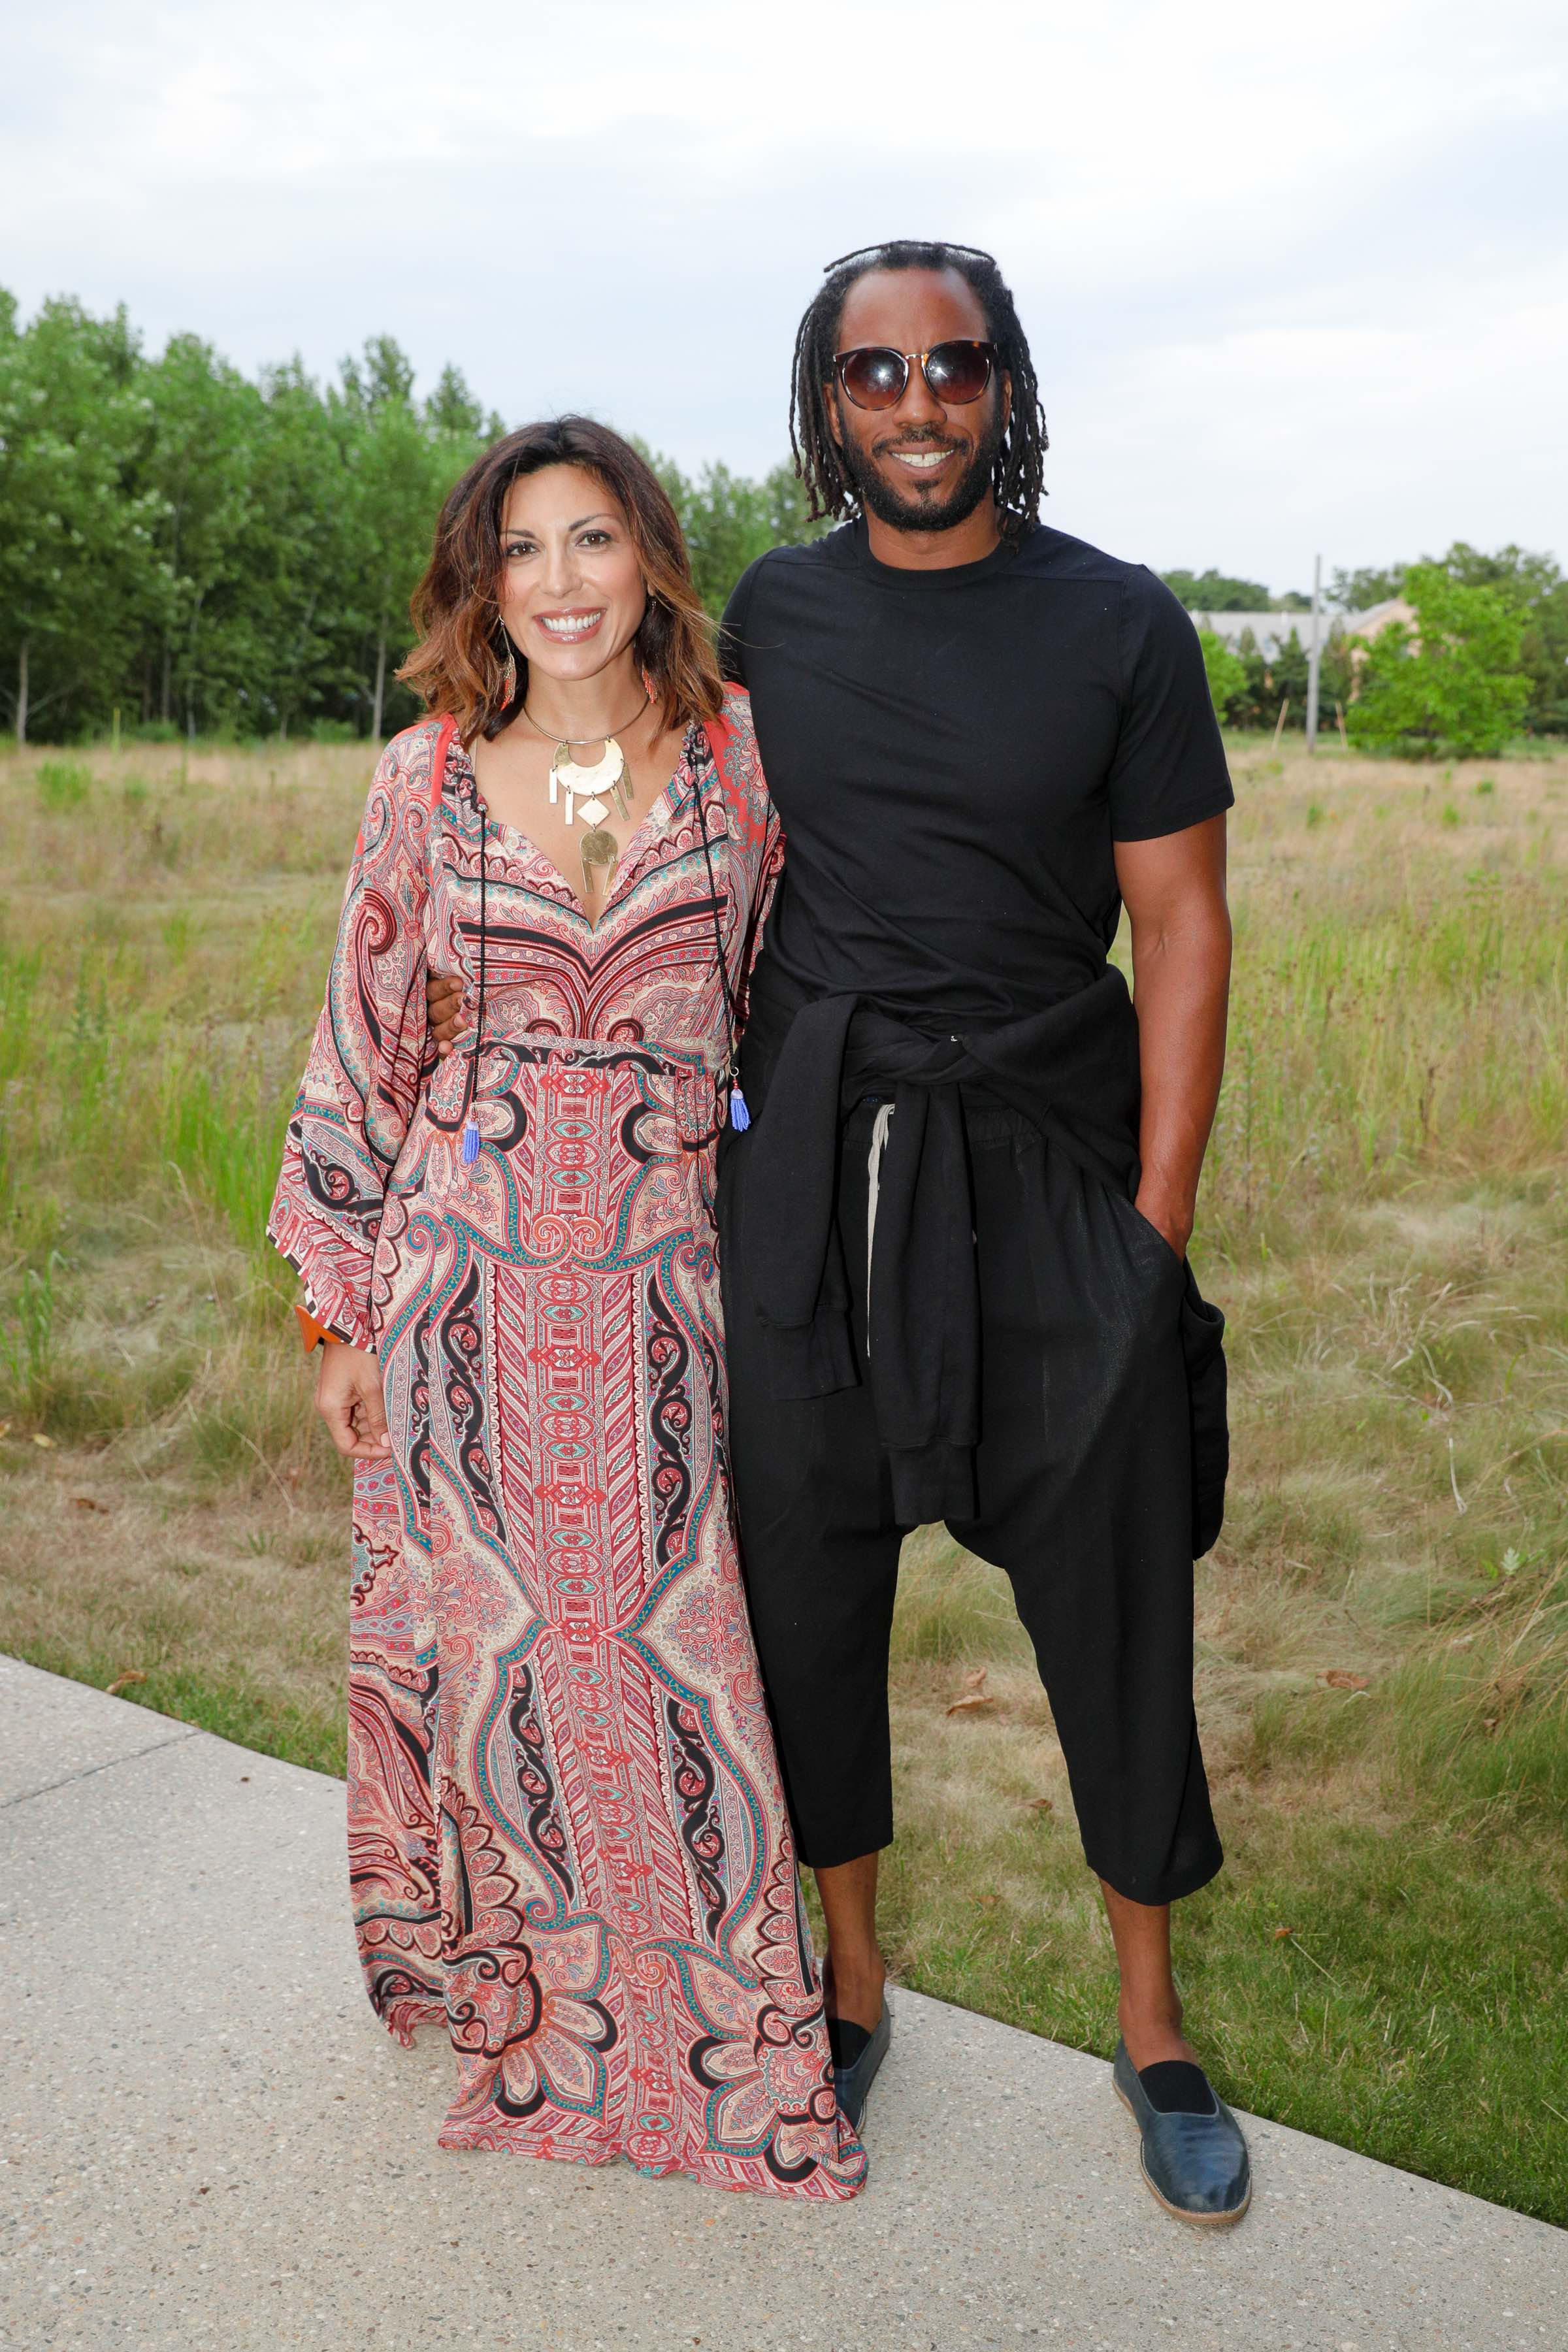 Sheree Hovsepian and Rashid Johnson